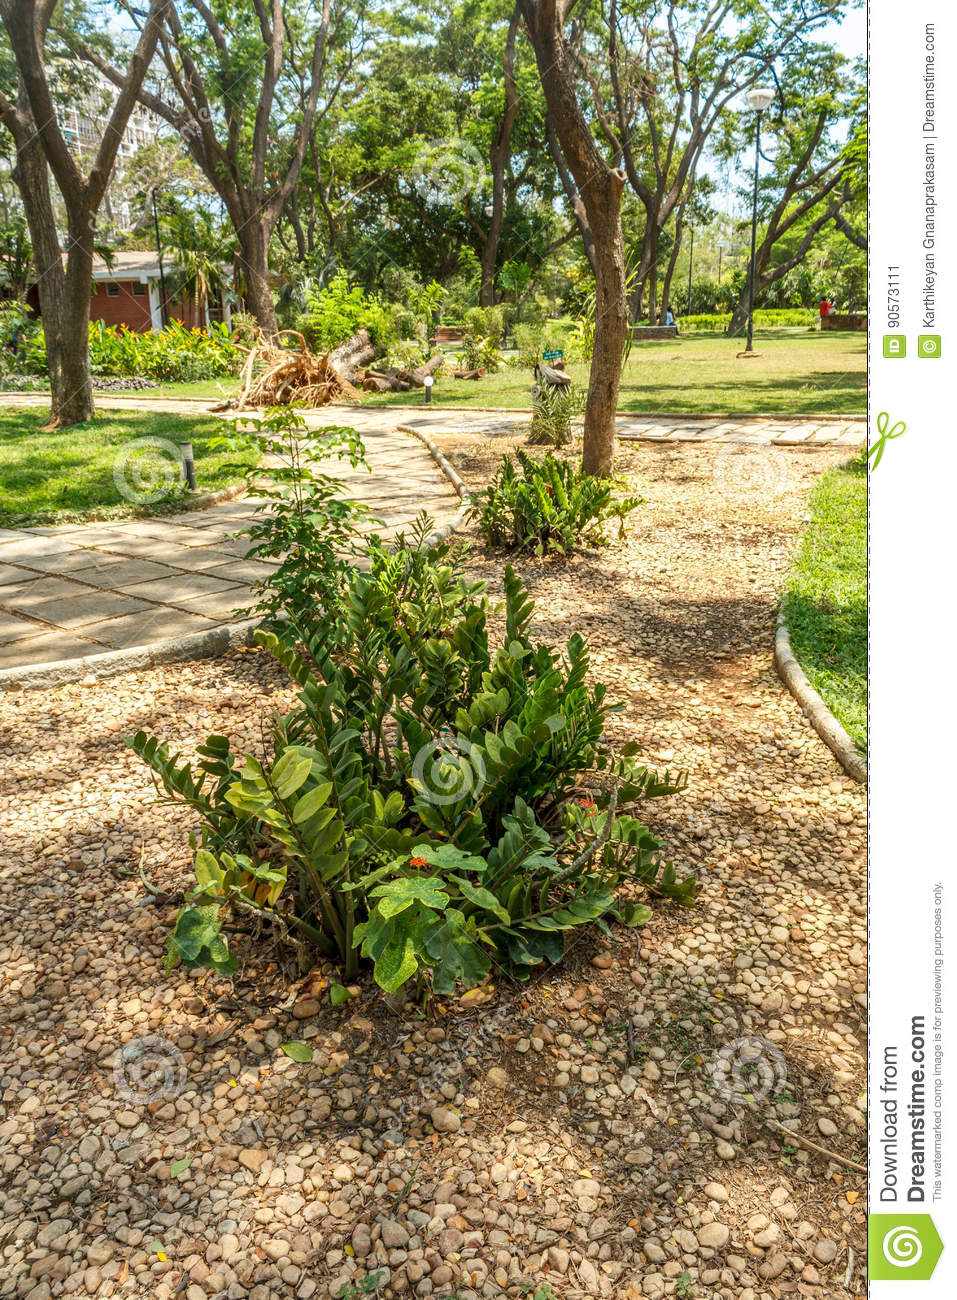 Narrow View Of Green Garden With Grass Trees Plants Shadows And